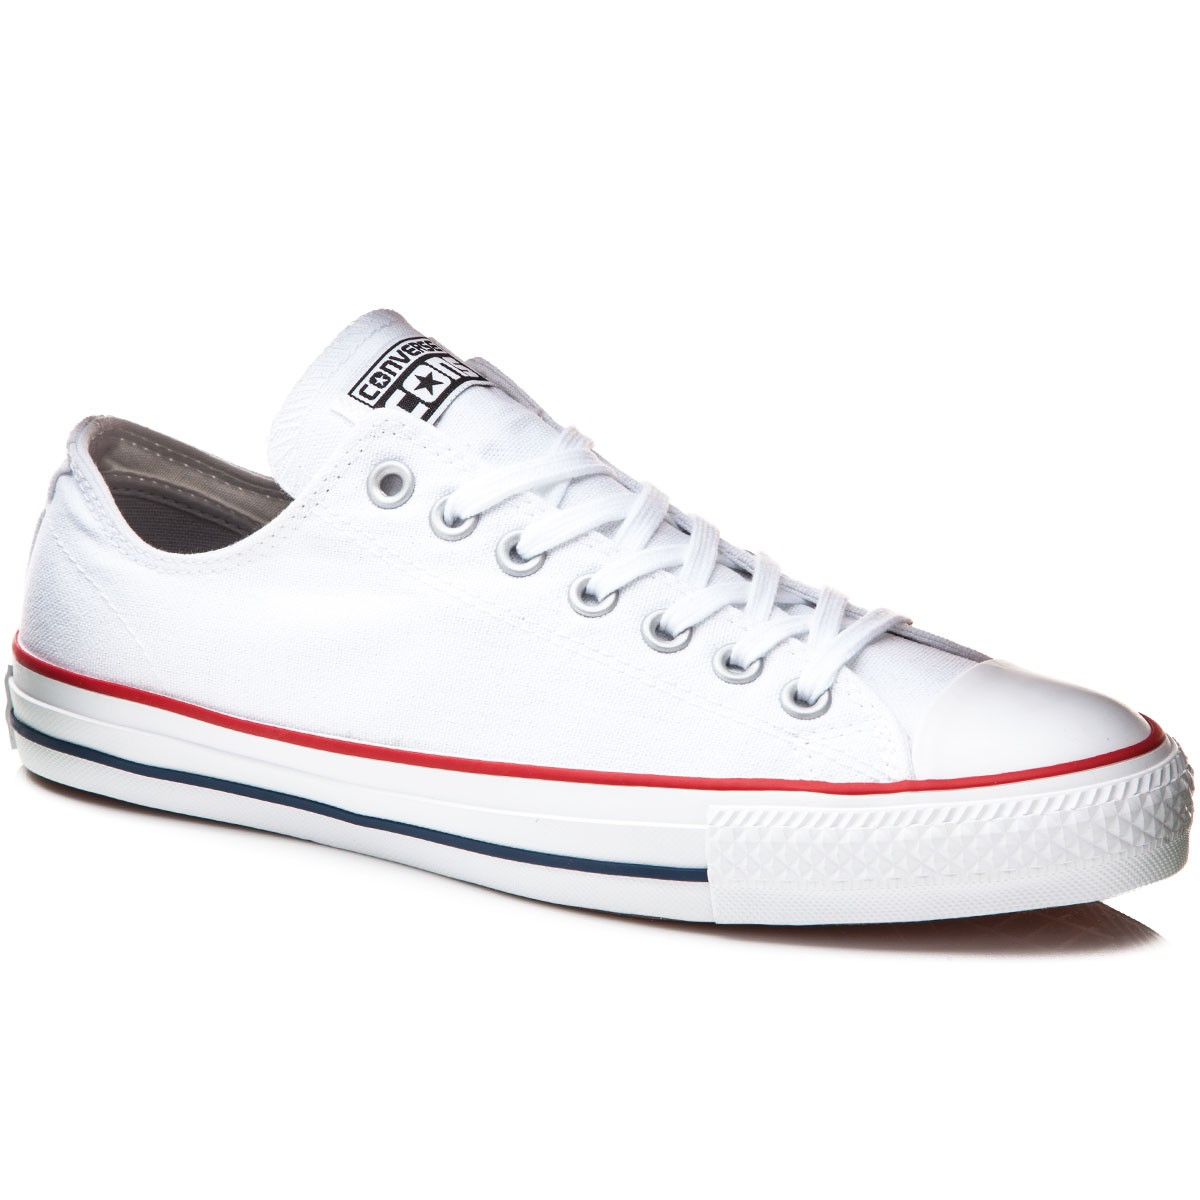 converse shoes rs 5000 shocks reviews